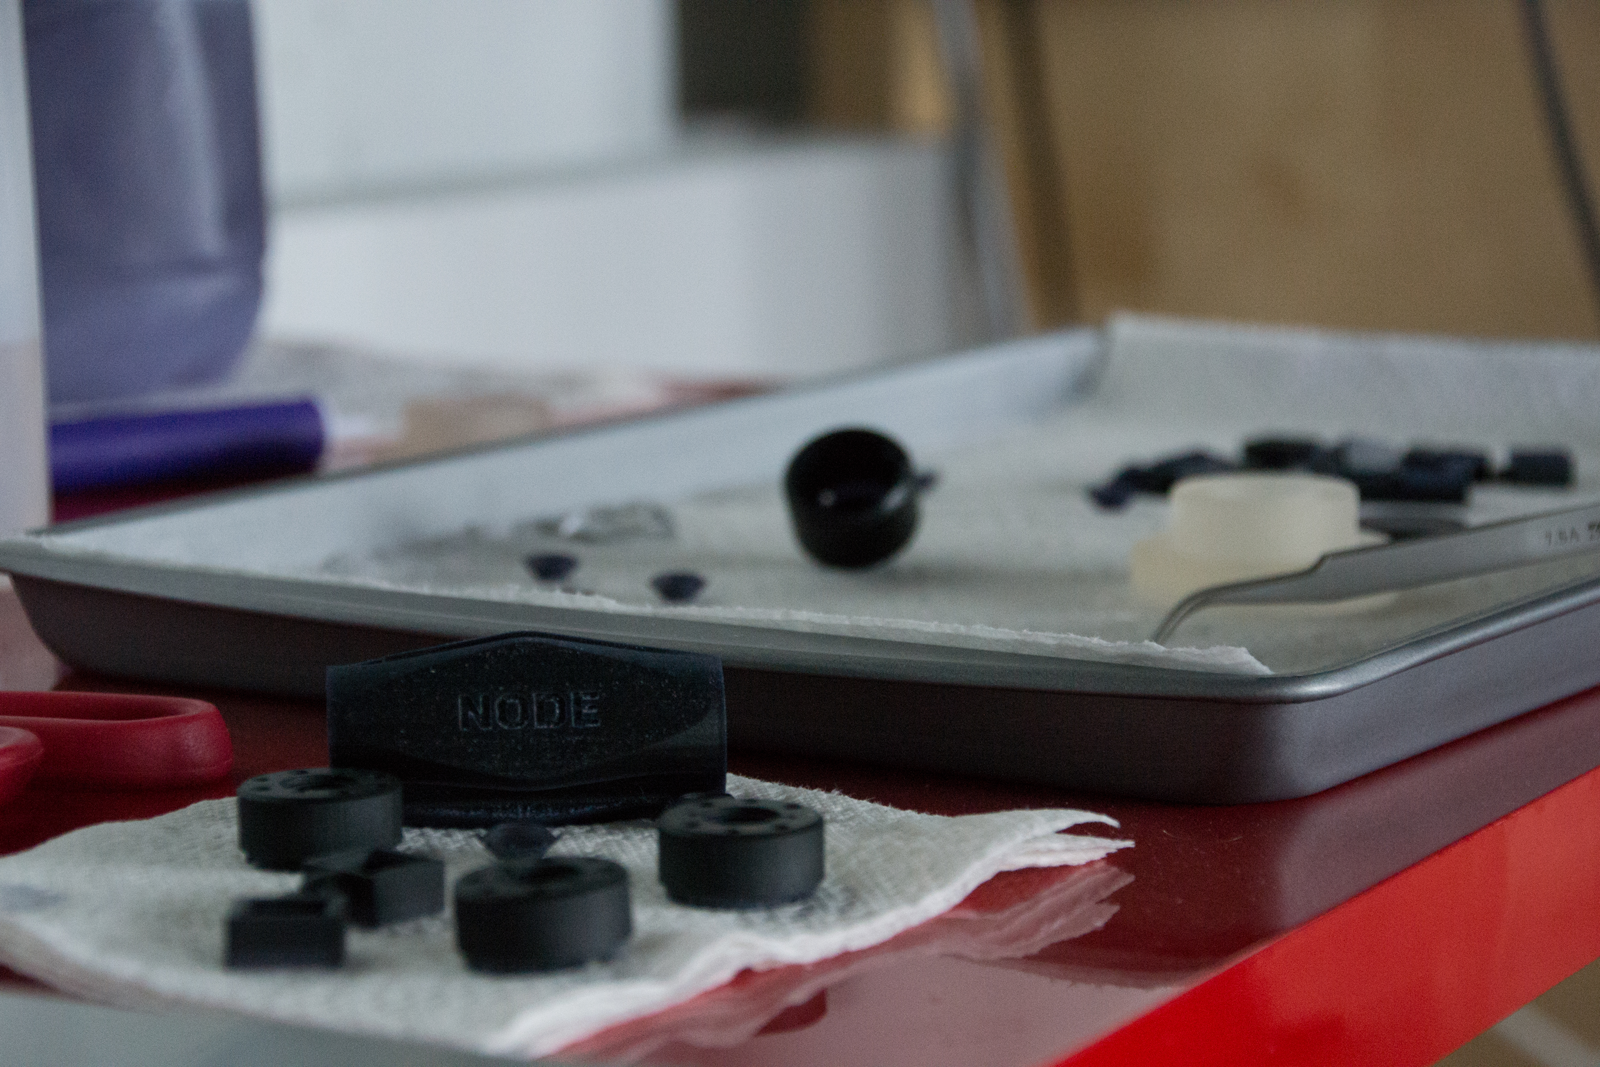 Node 3D printed parts used for prototyping and end production